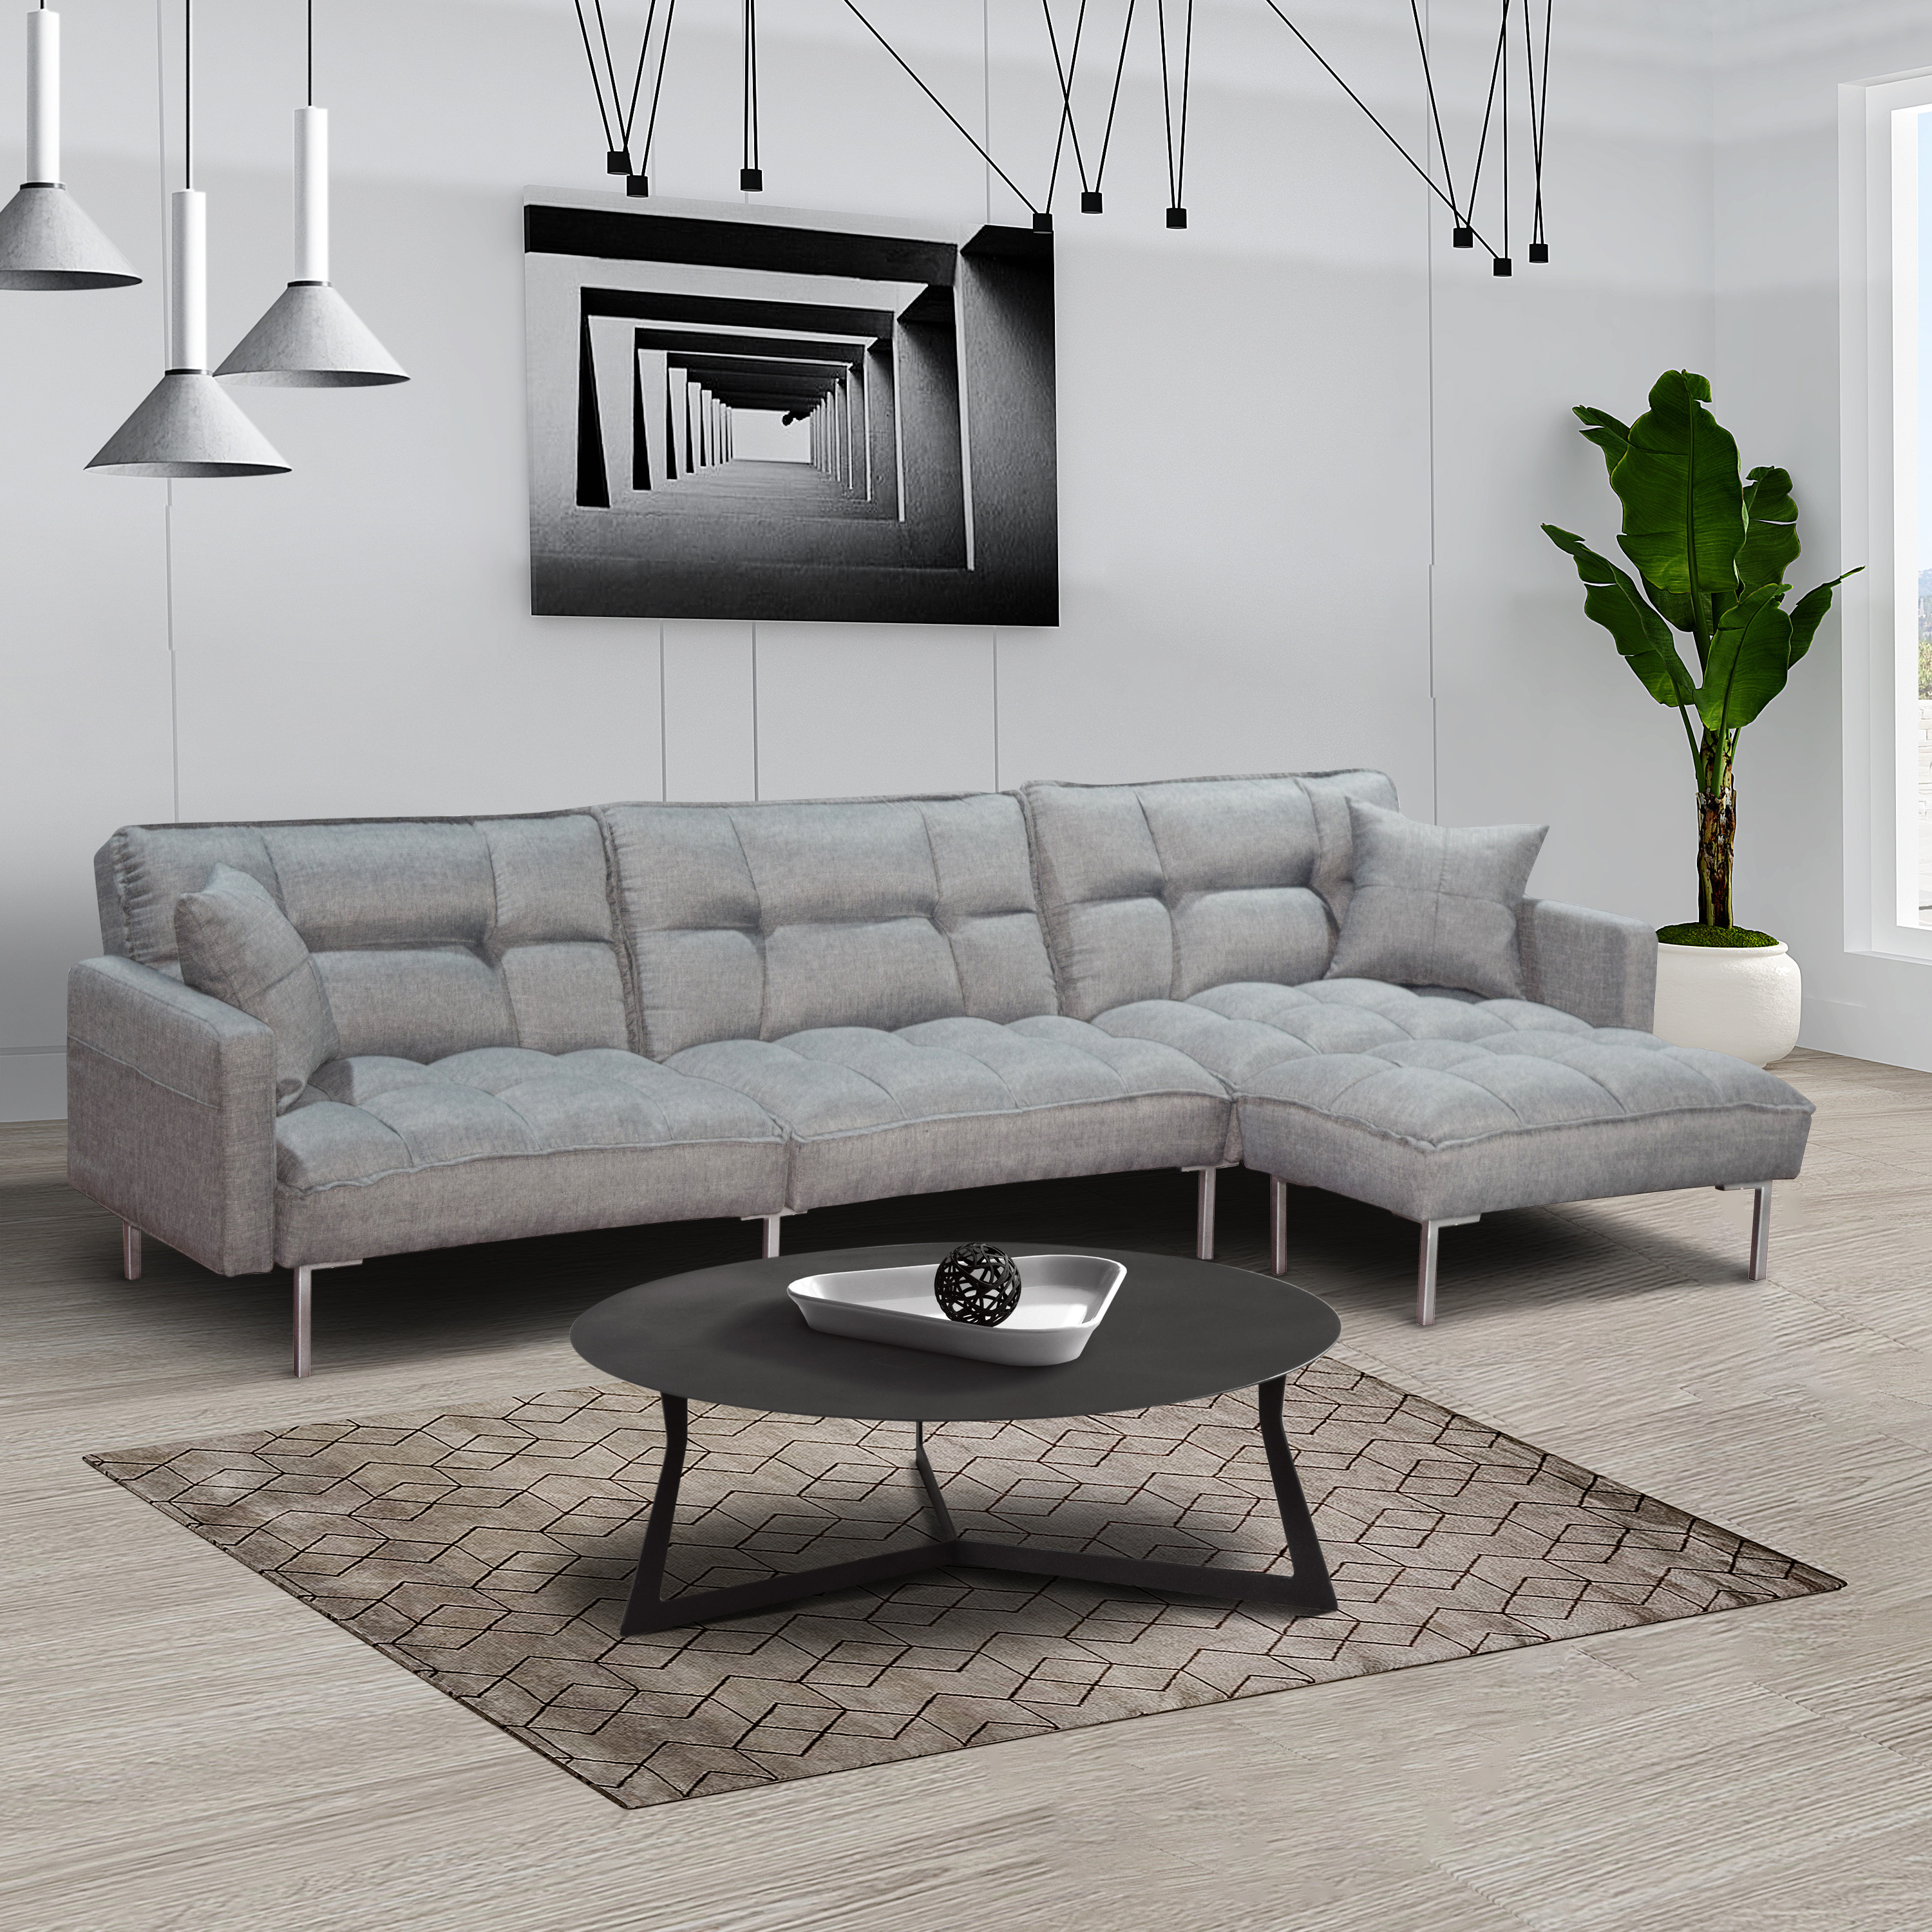 sofa bed segmart l shaped sectional sofa sleeper with reversible ottoman 2 pillows modern fabric bedroom furniture sleeper sofa couch with metal